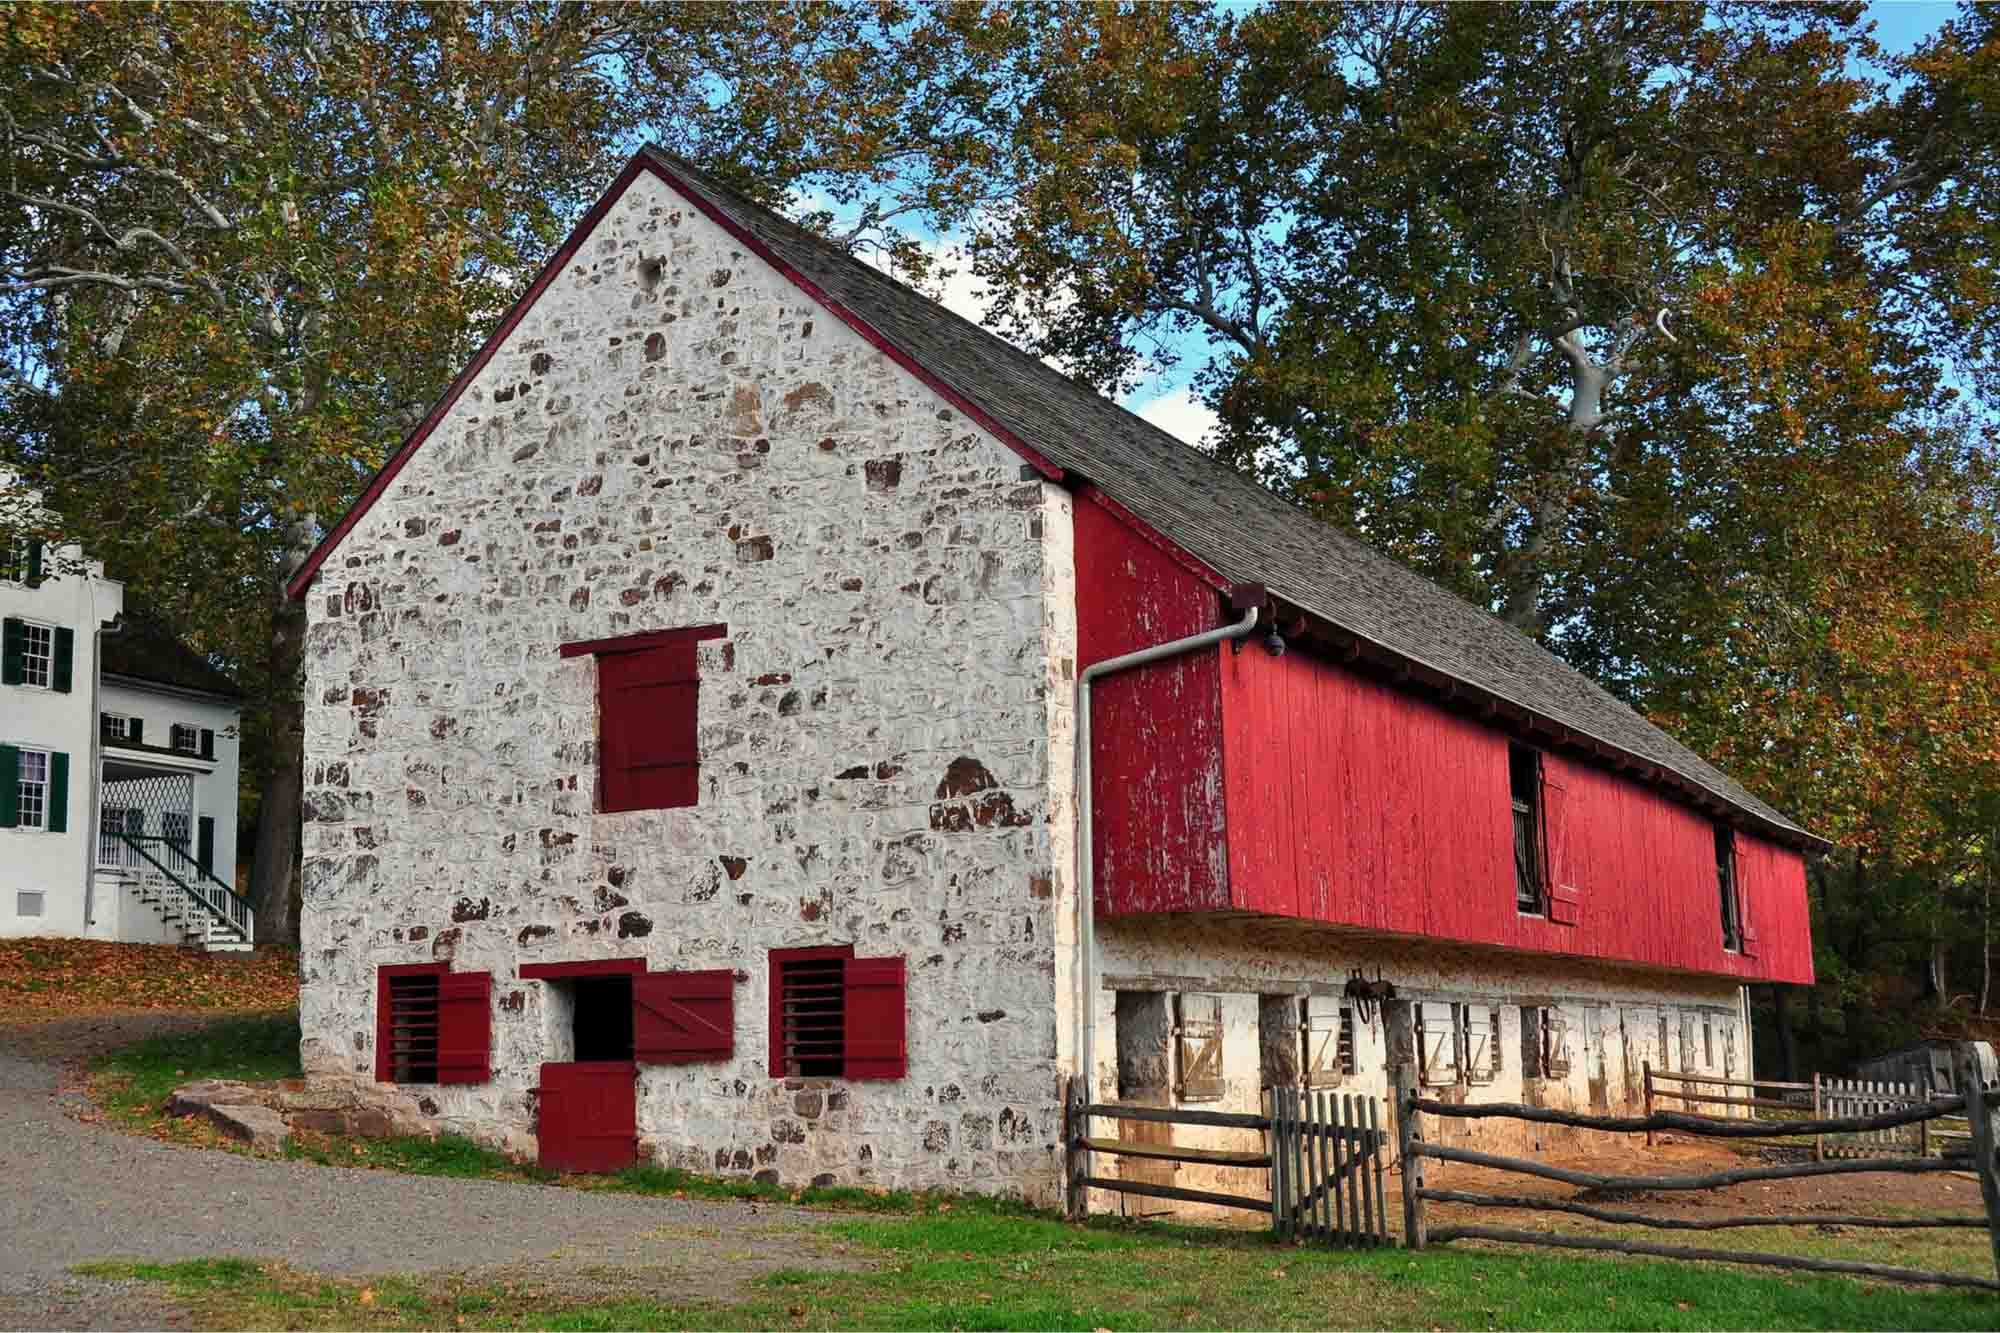 Stone and red barn